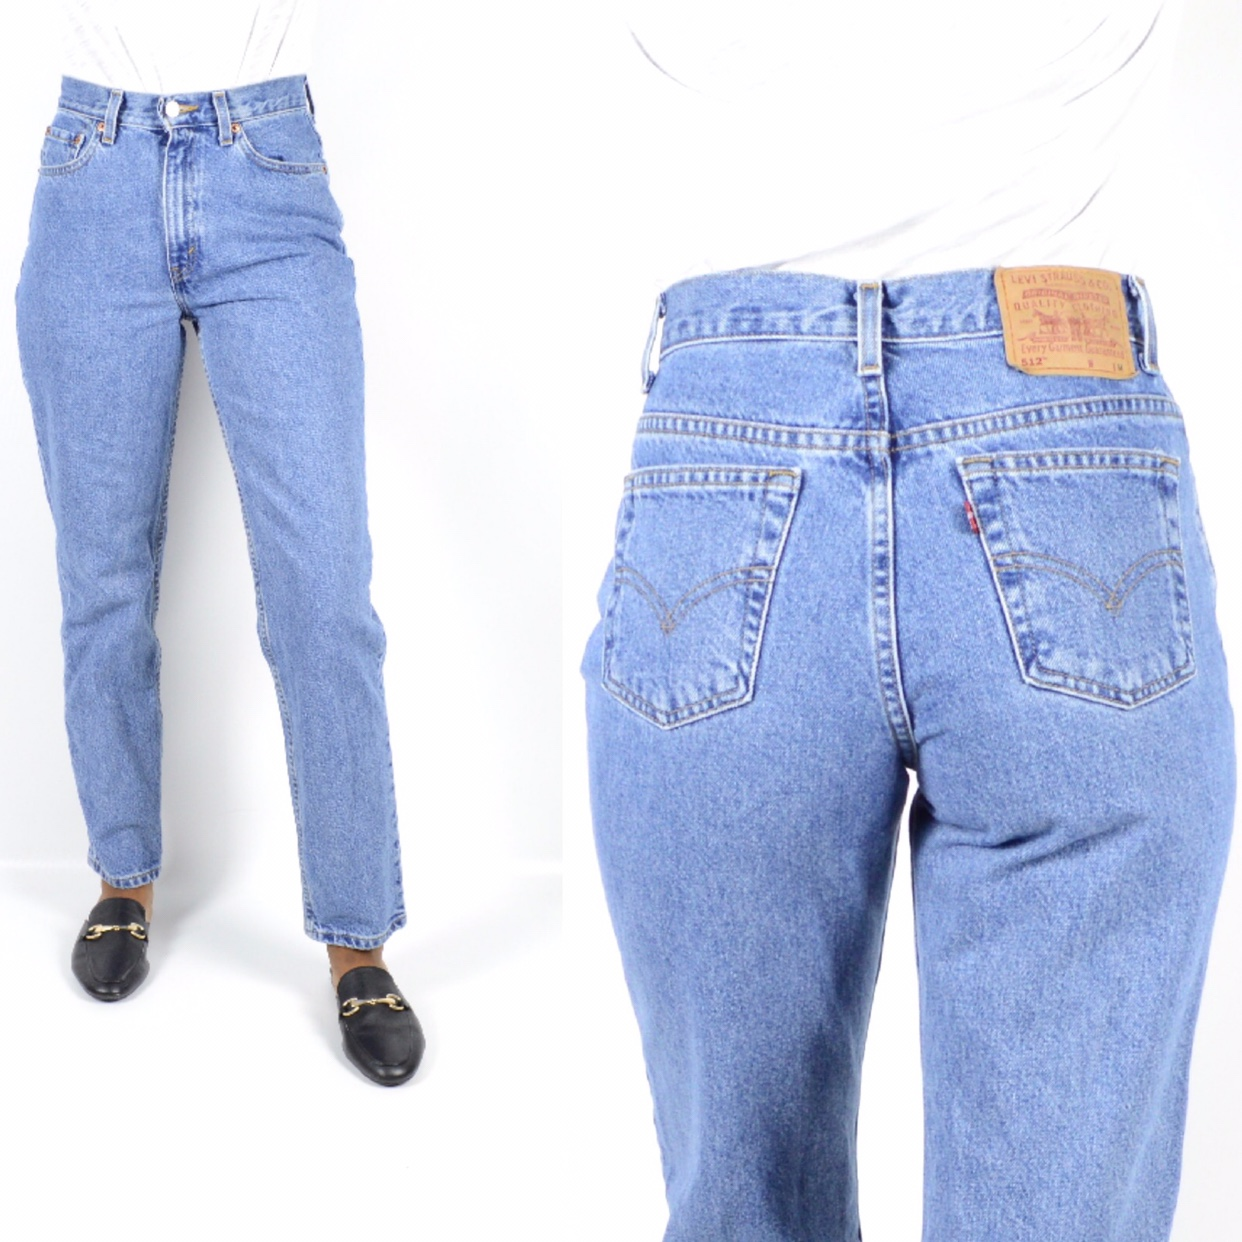 Vintage Levi's 512 High Rise Slim Fit Tapered Leg Depop